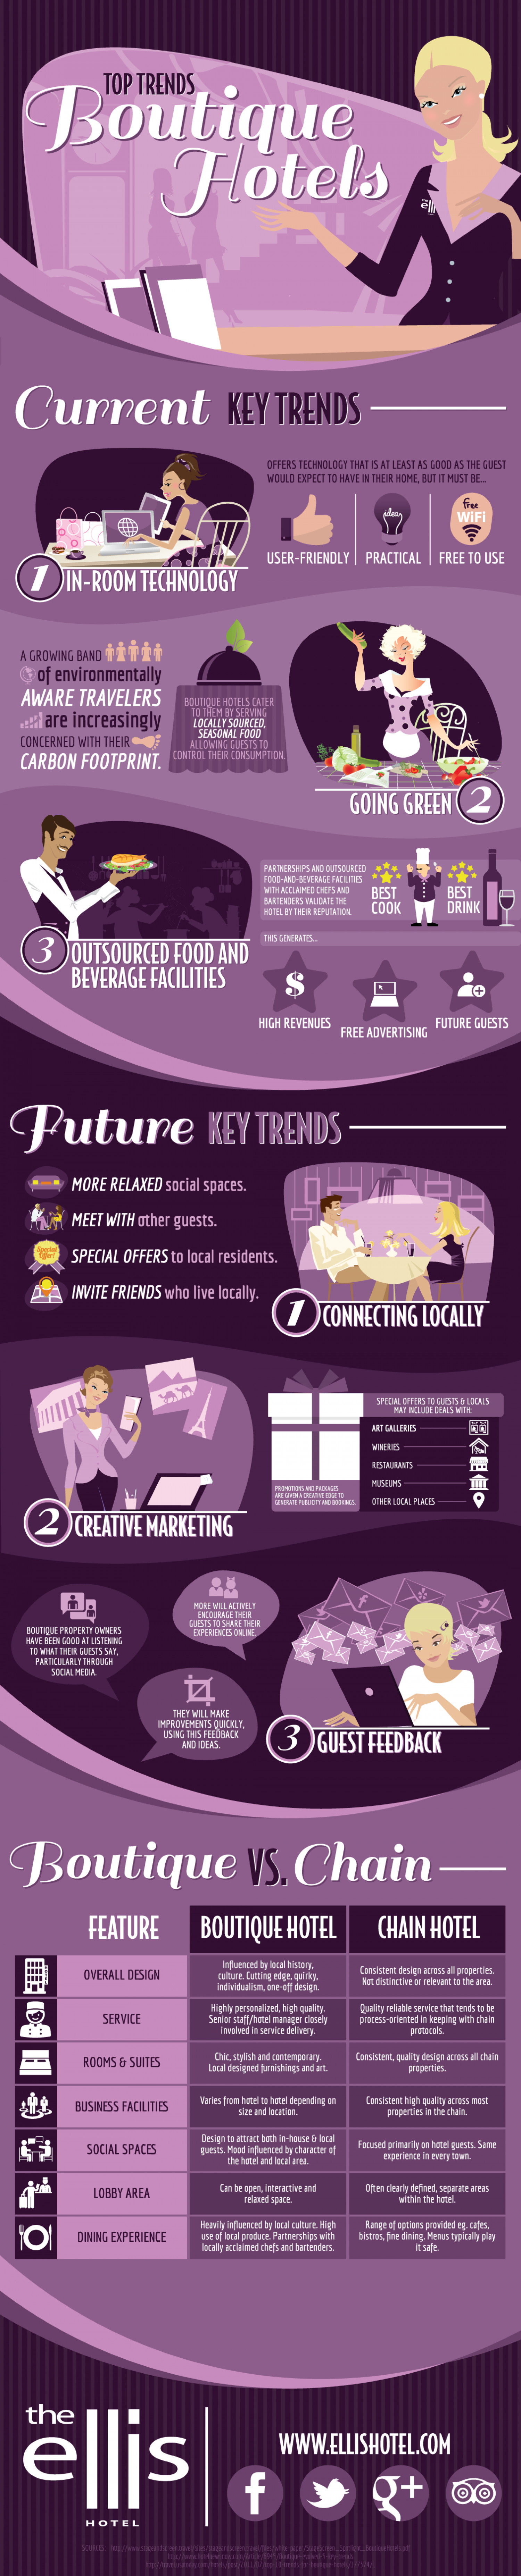 Top Trends of Boutique Hotels Infographic